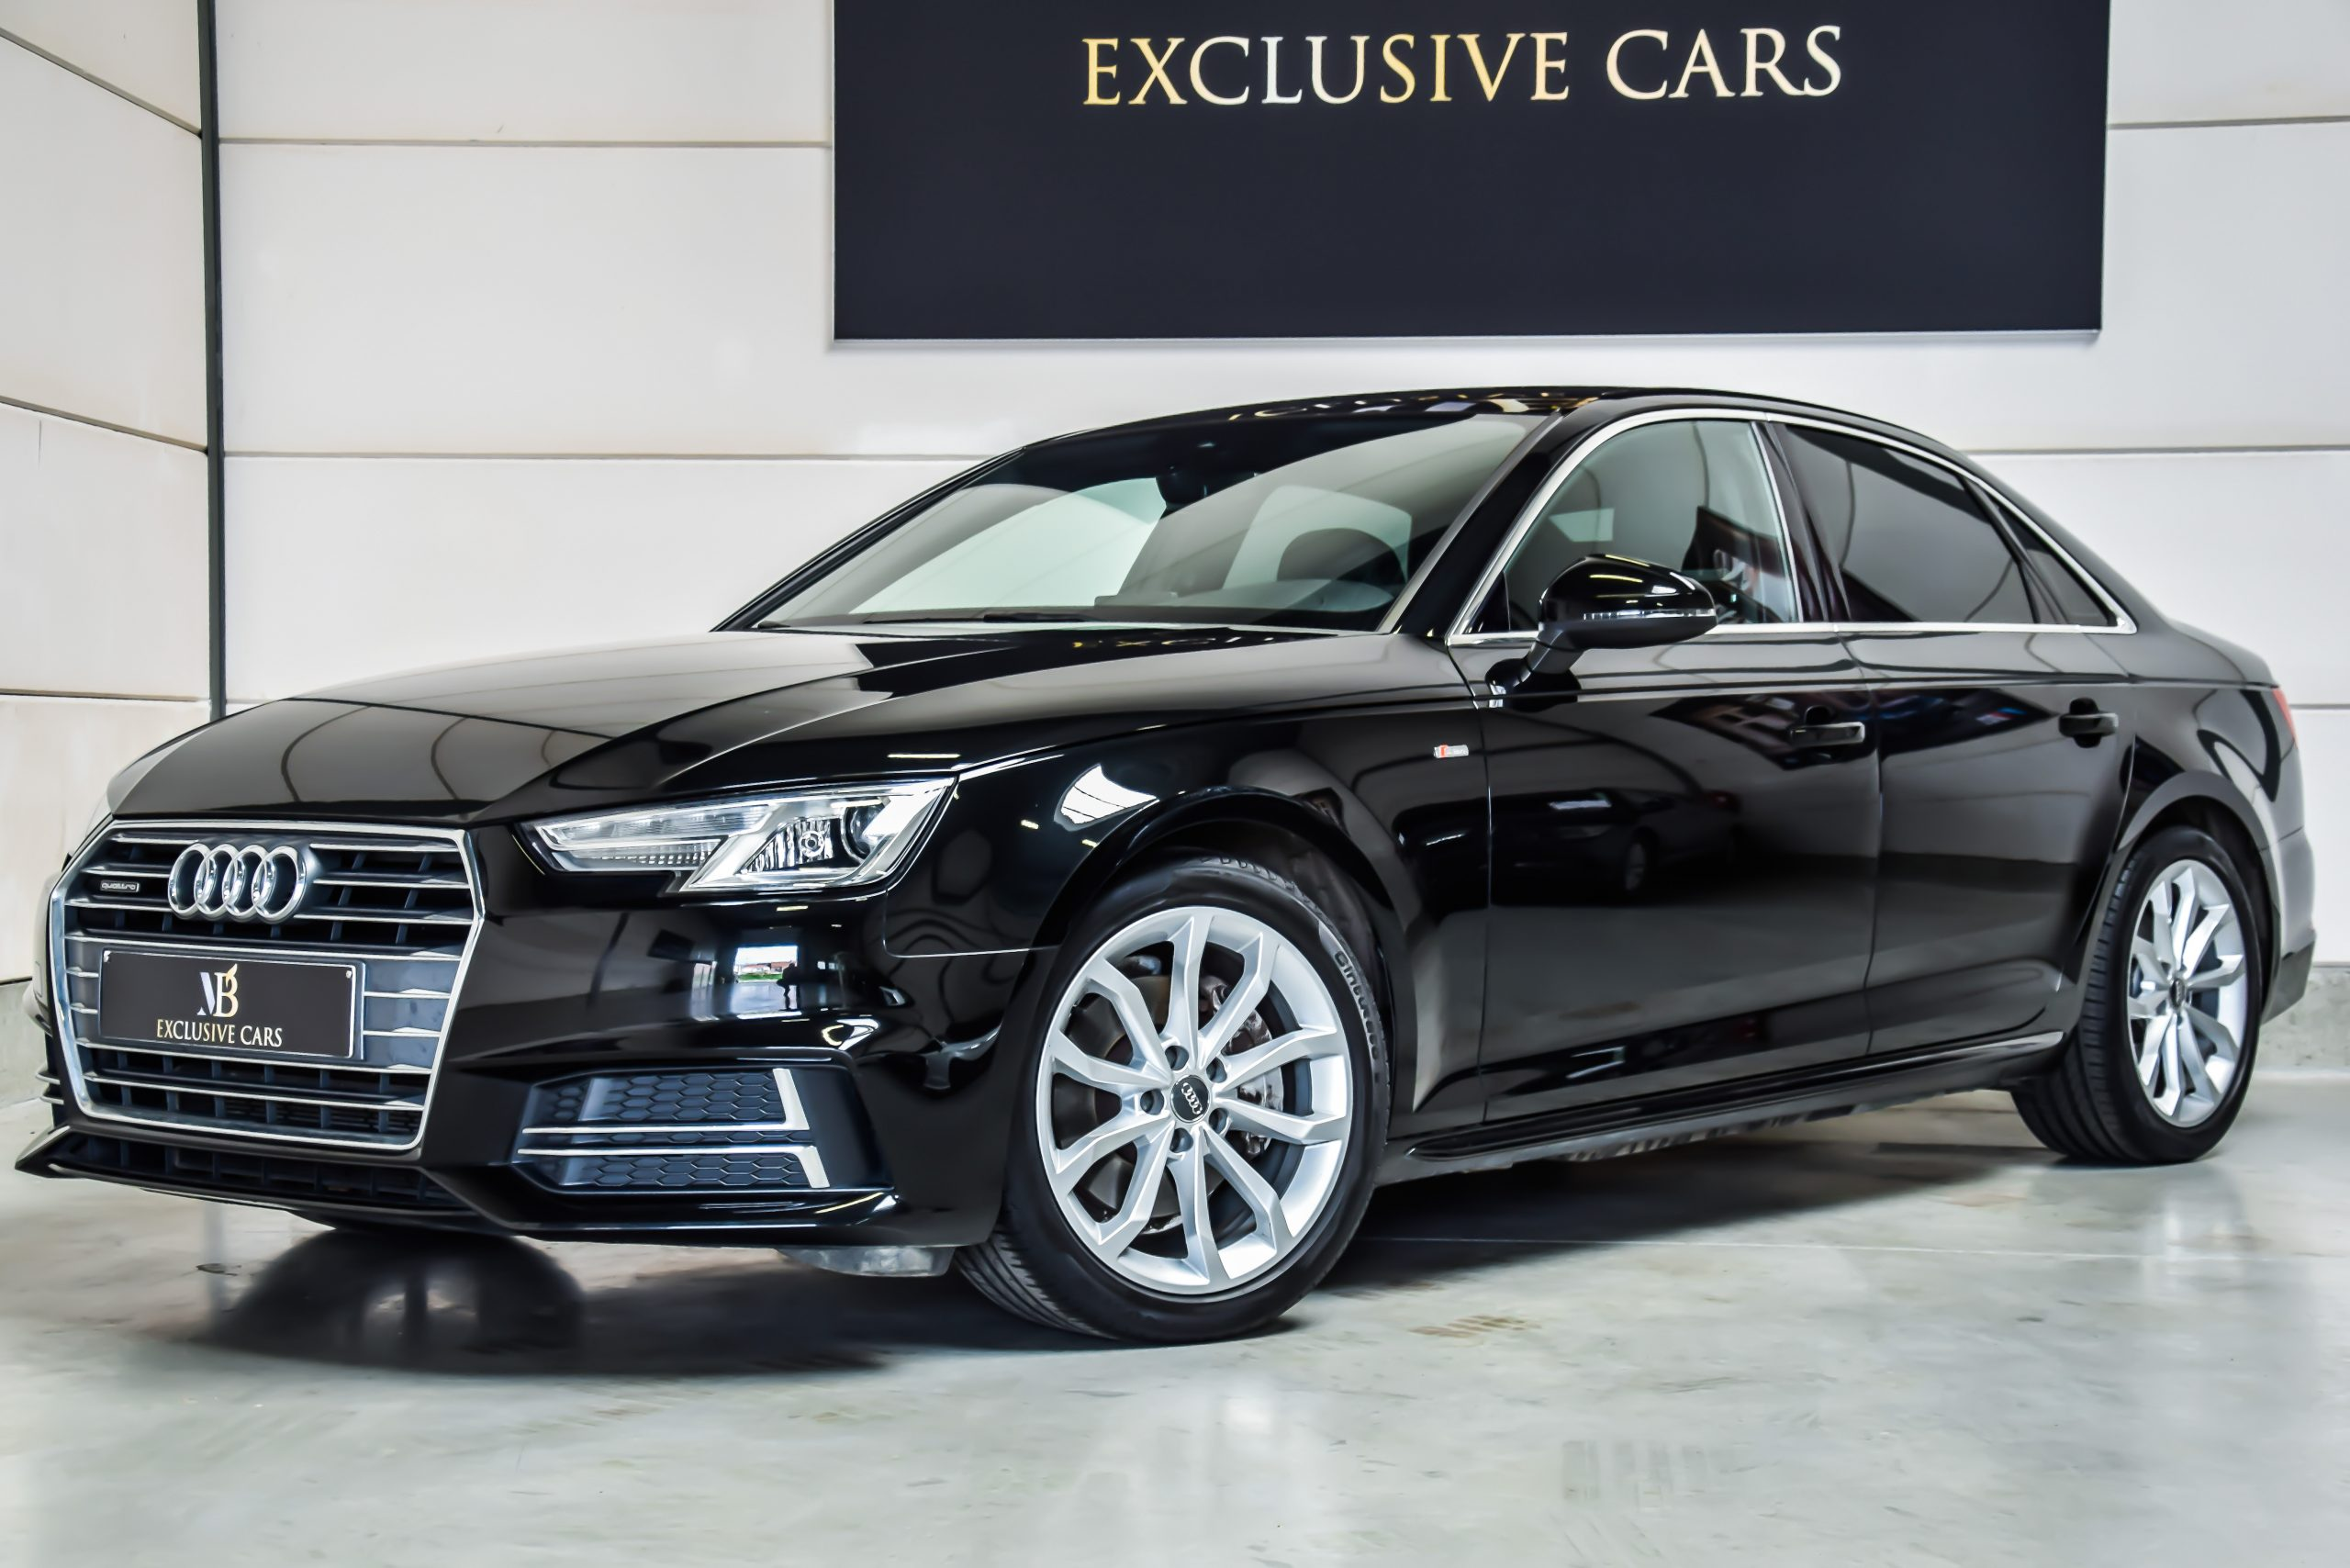 Audi A4 2.0 TDI Quattro S-Line 11/2015 – Full Option!!